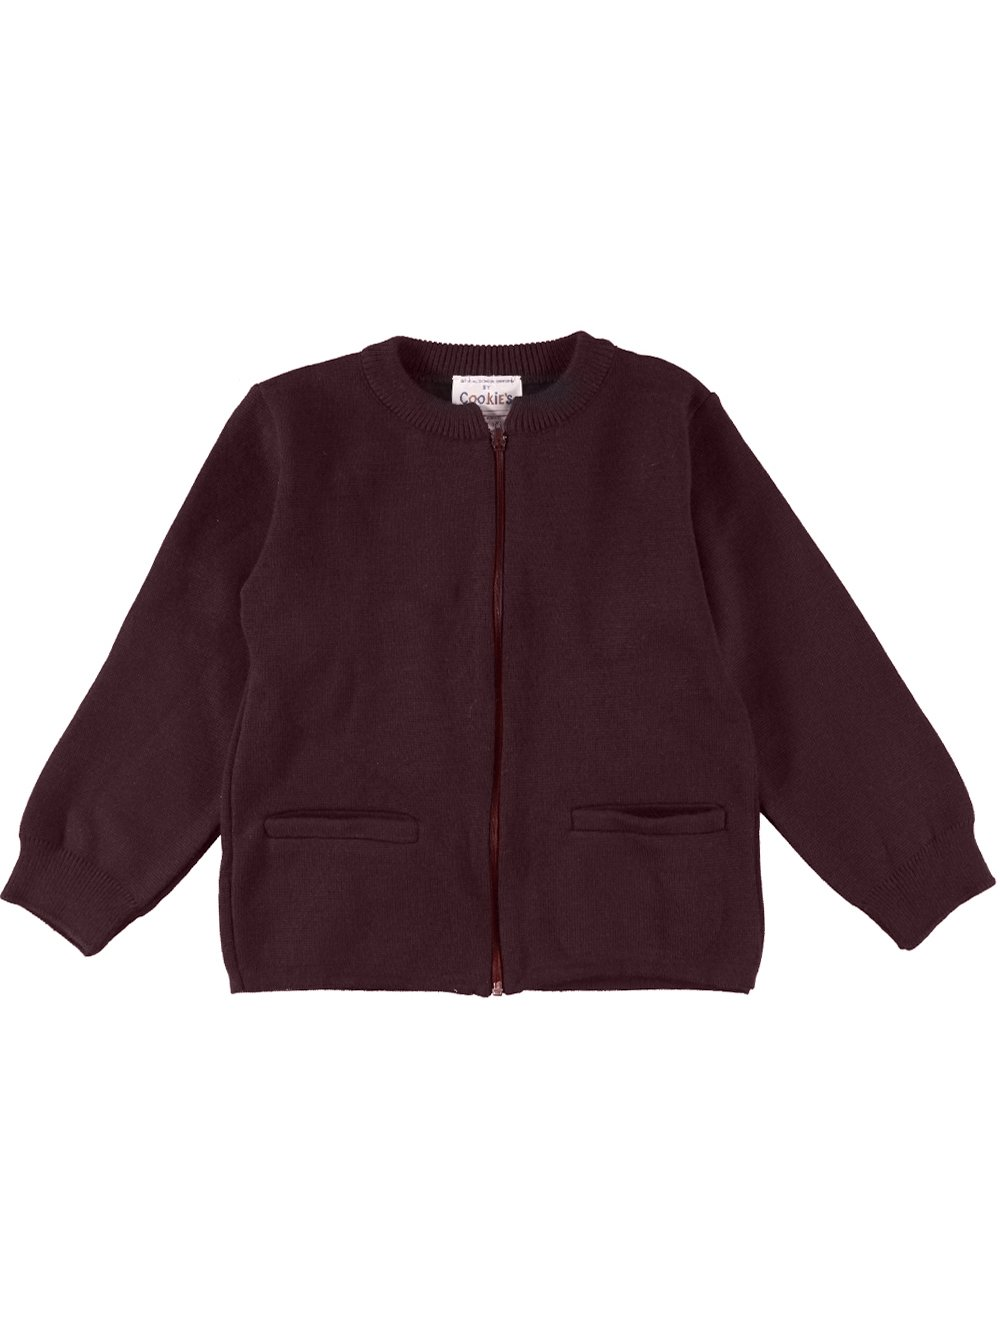 Cookie's Brand Big Girls' Zip-Up Cardigan - burgundy, 10-12